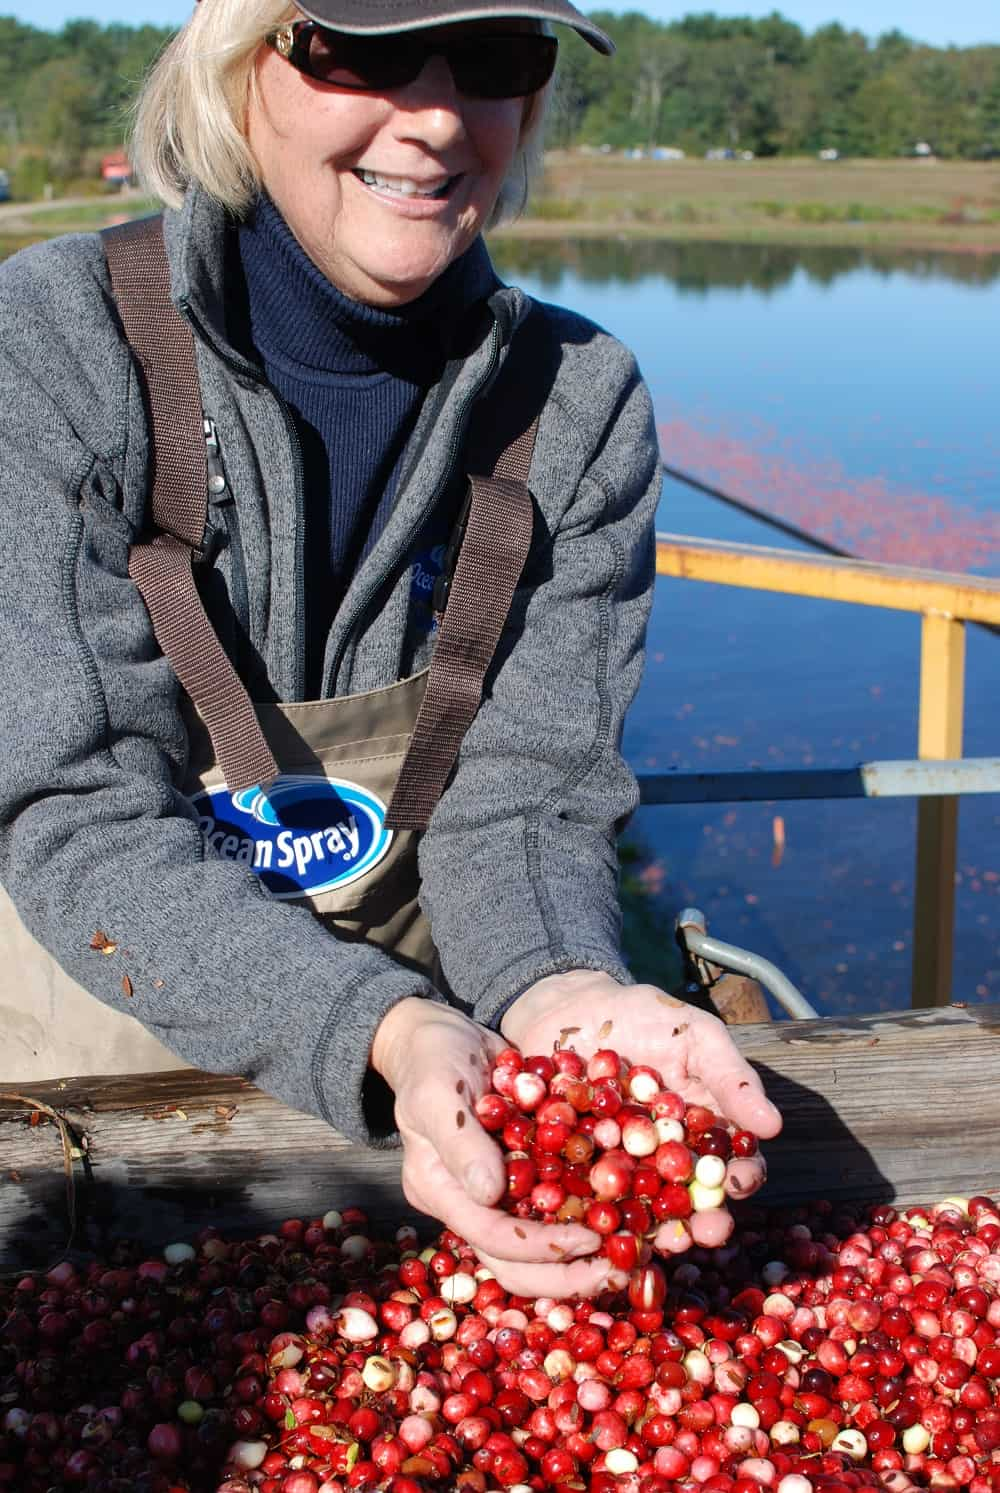 Cranberry farmer holding a handful of fresh cranberries